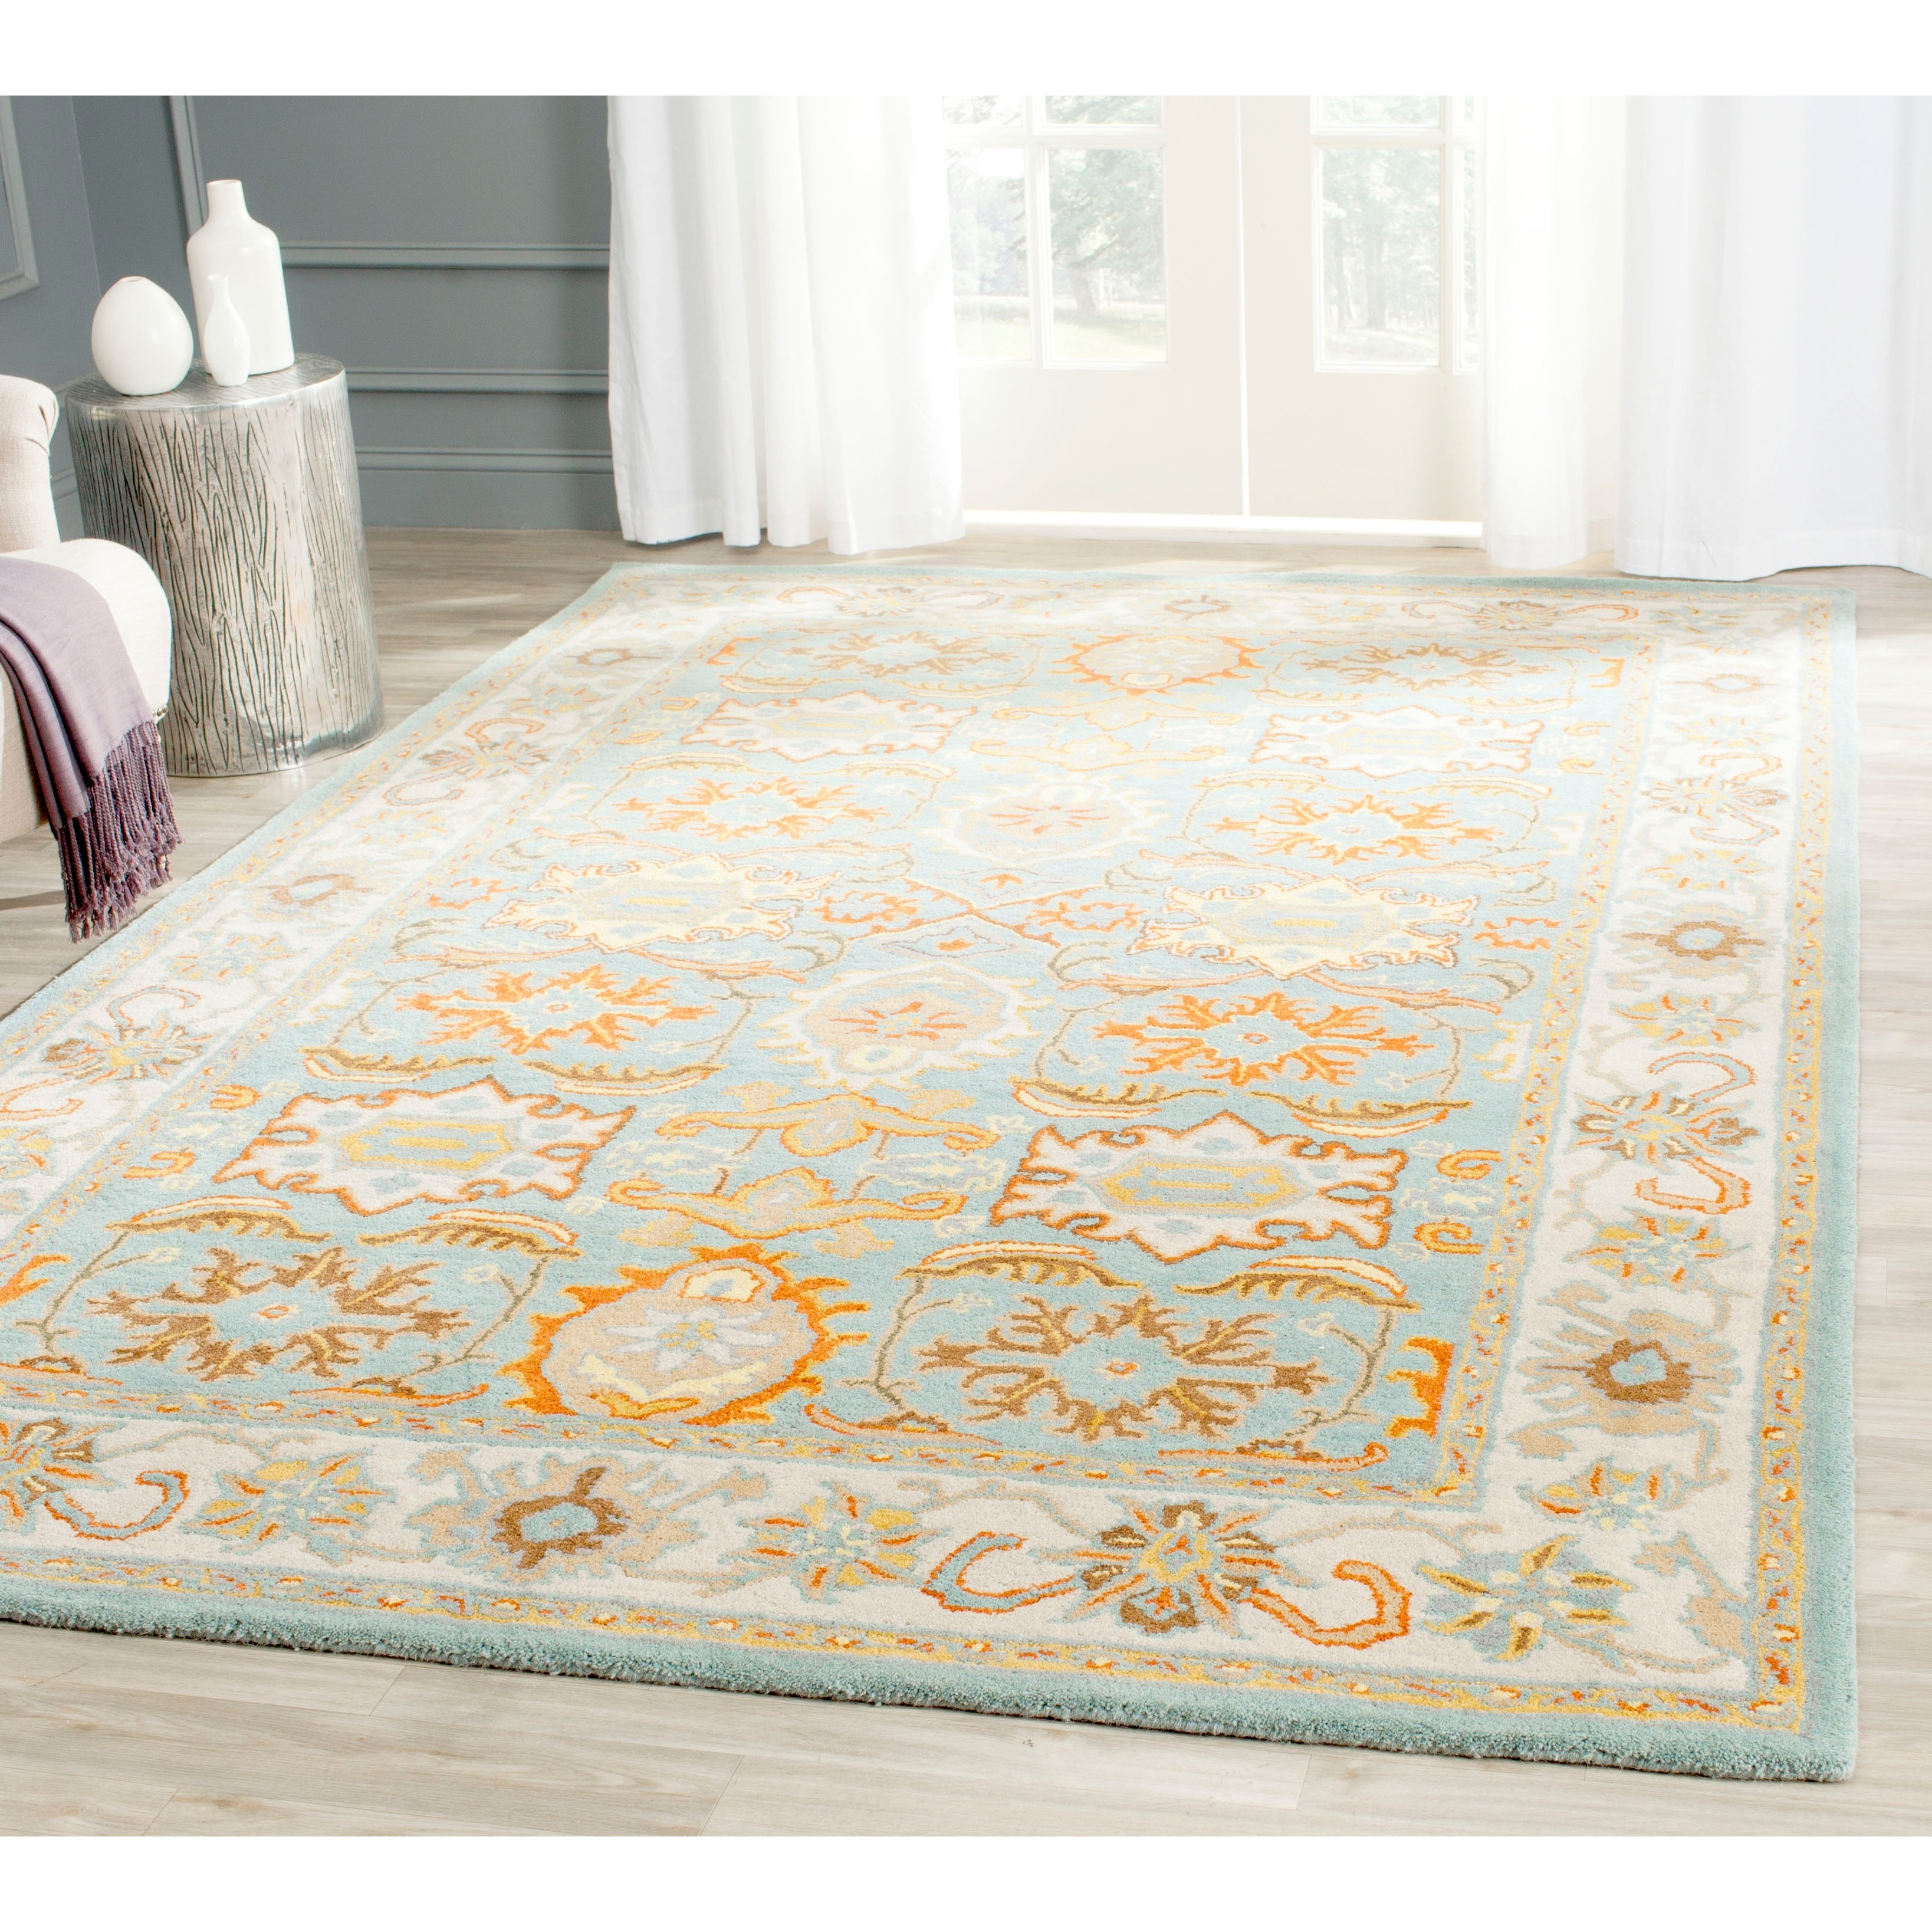 10x10 Square New Oushak Oriental Wool Area Rug: 15 Best Collection Of Square Wool Area Rugs